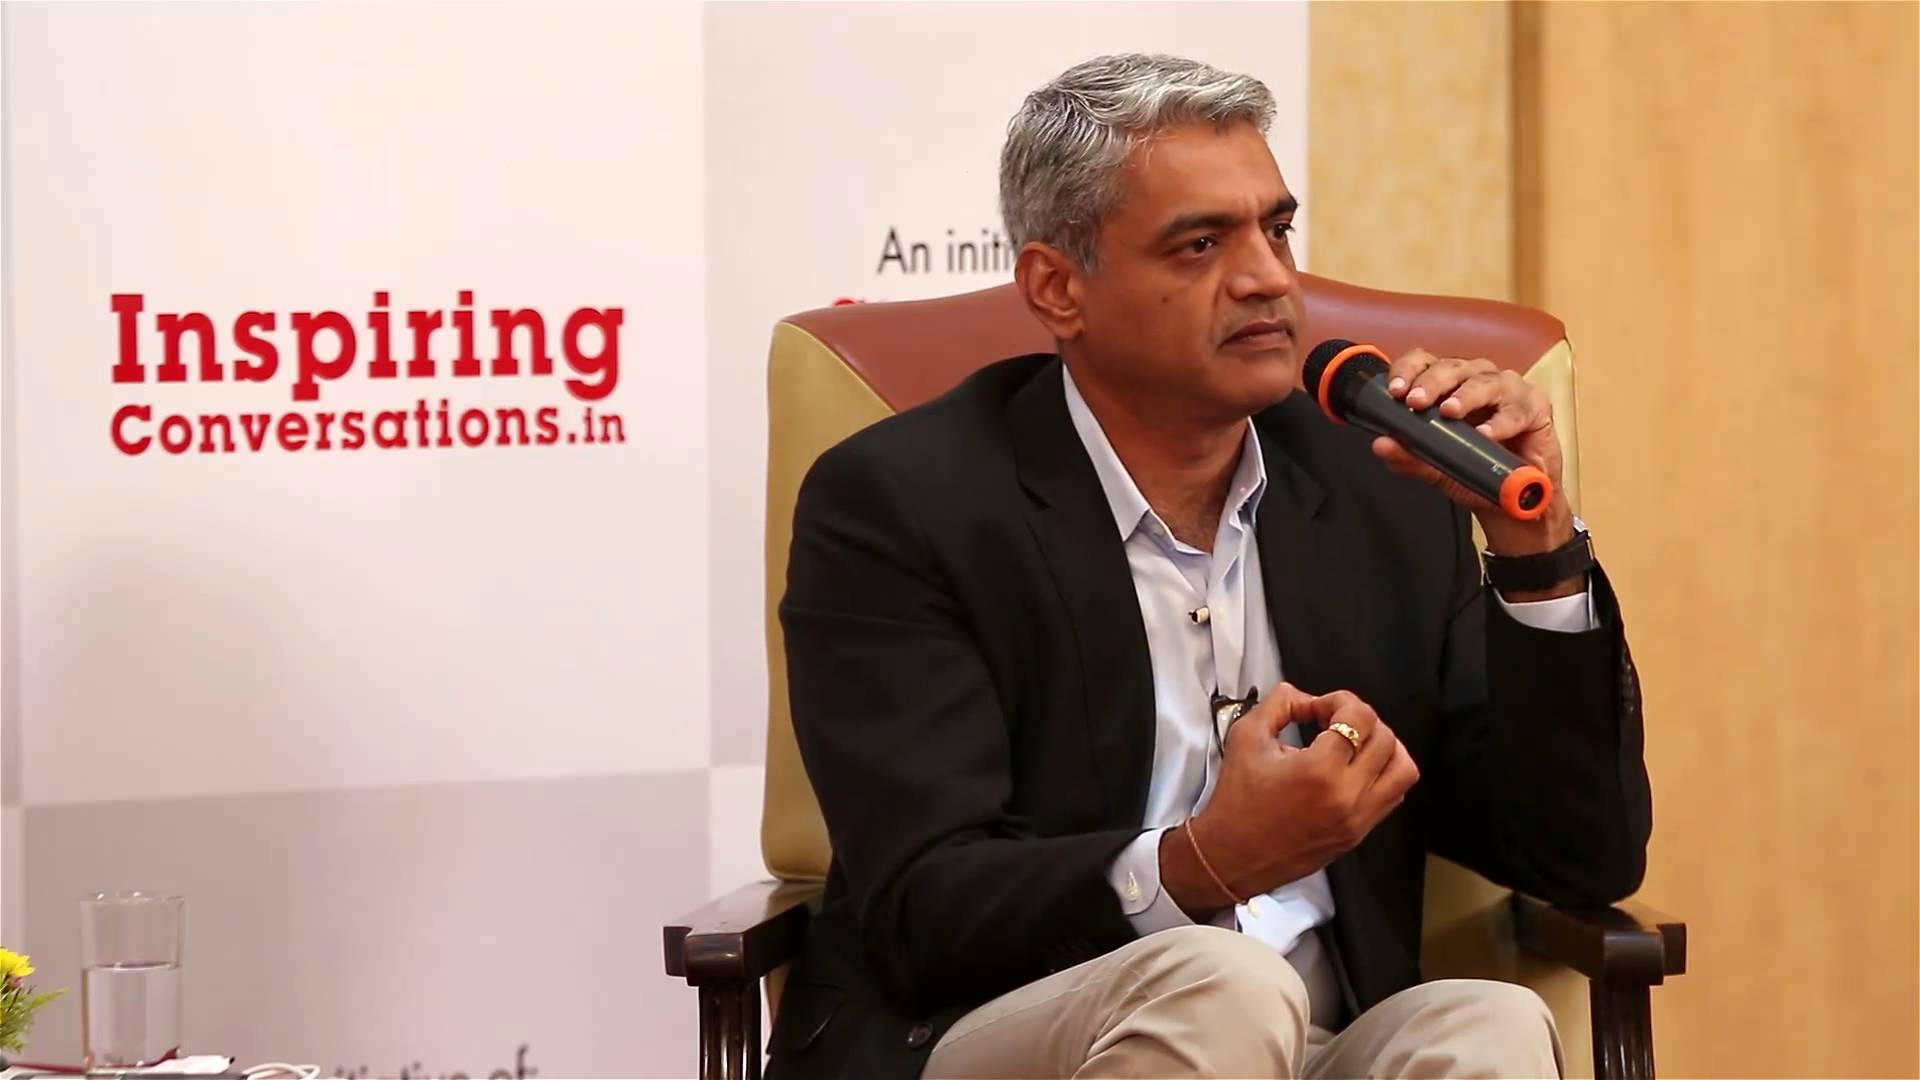 Pictured above is Captain Raghu Raman - a former CEO of the Indian National Intelligence Grid and military officer, sitting in a chair while holding a microphone and acting as a guest speaker at an event. In the wall behind him there is a caption saying 'inspiring conversations.in'.